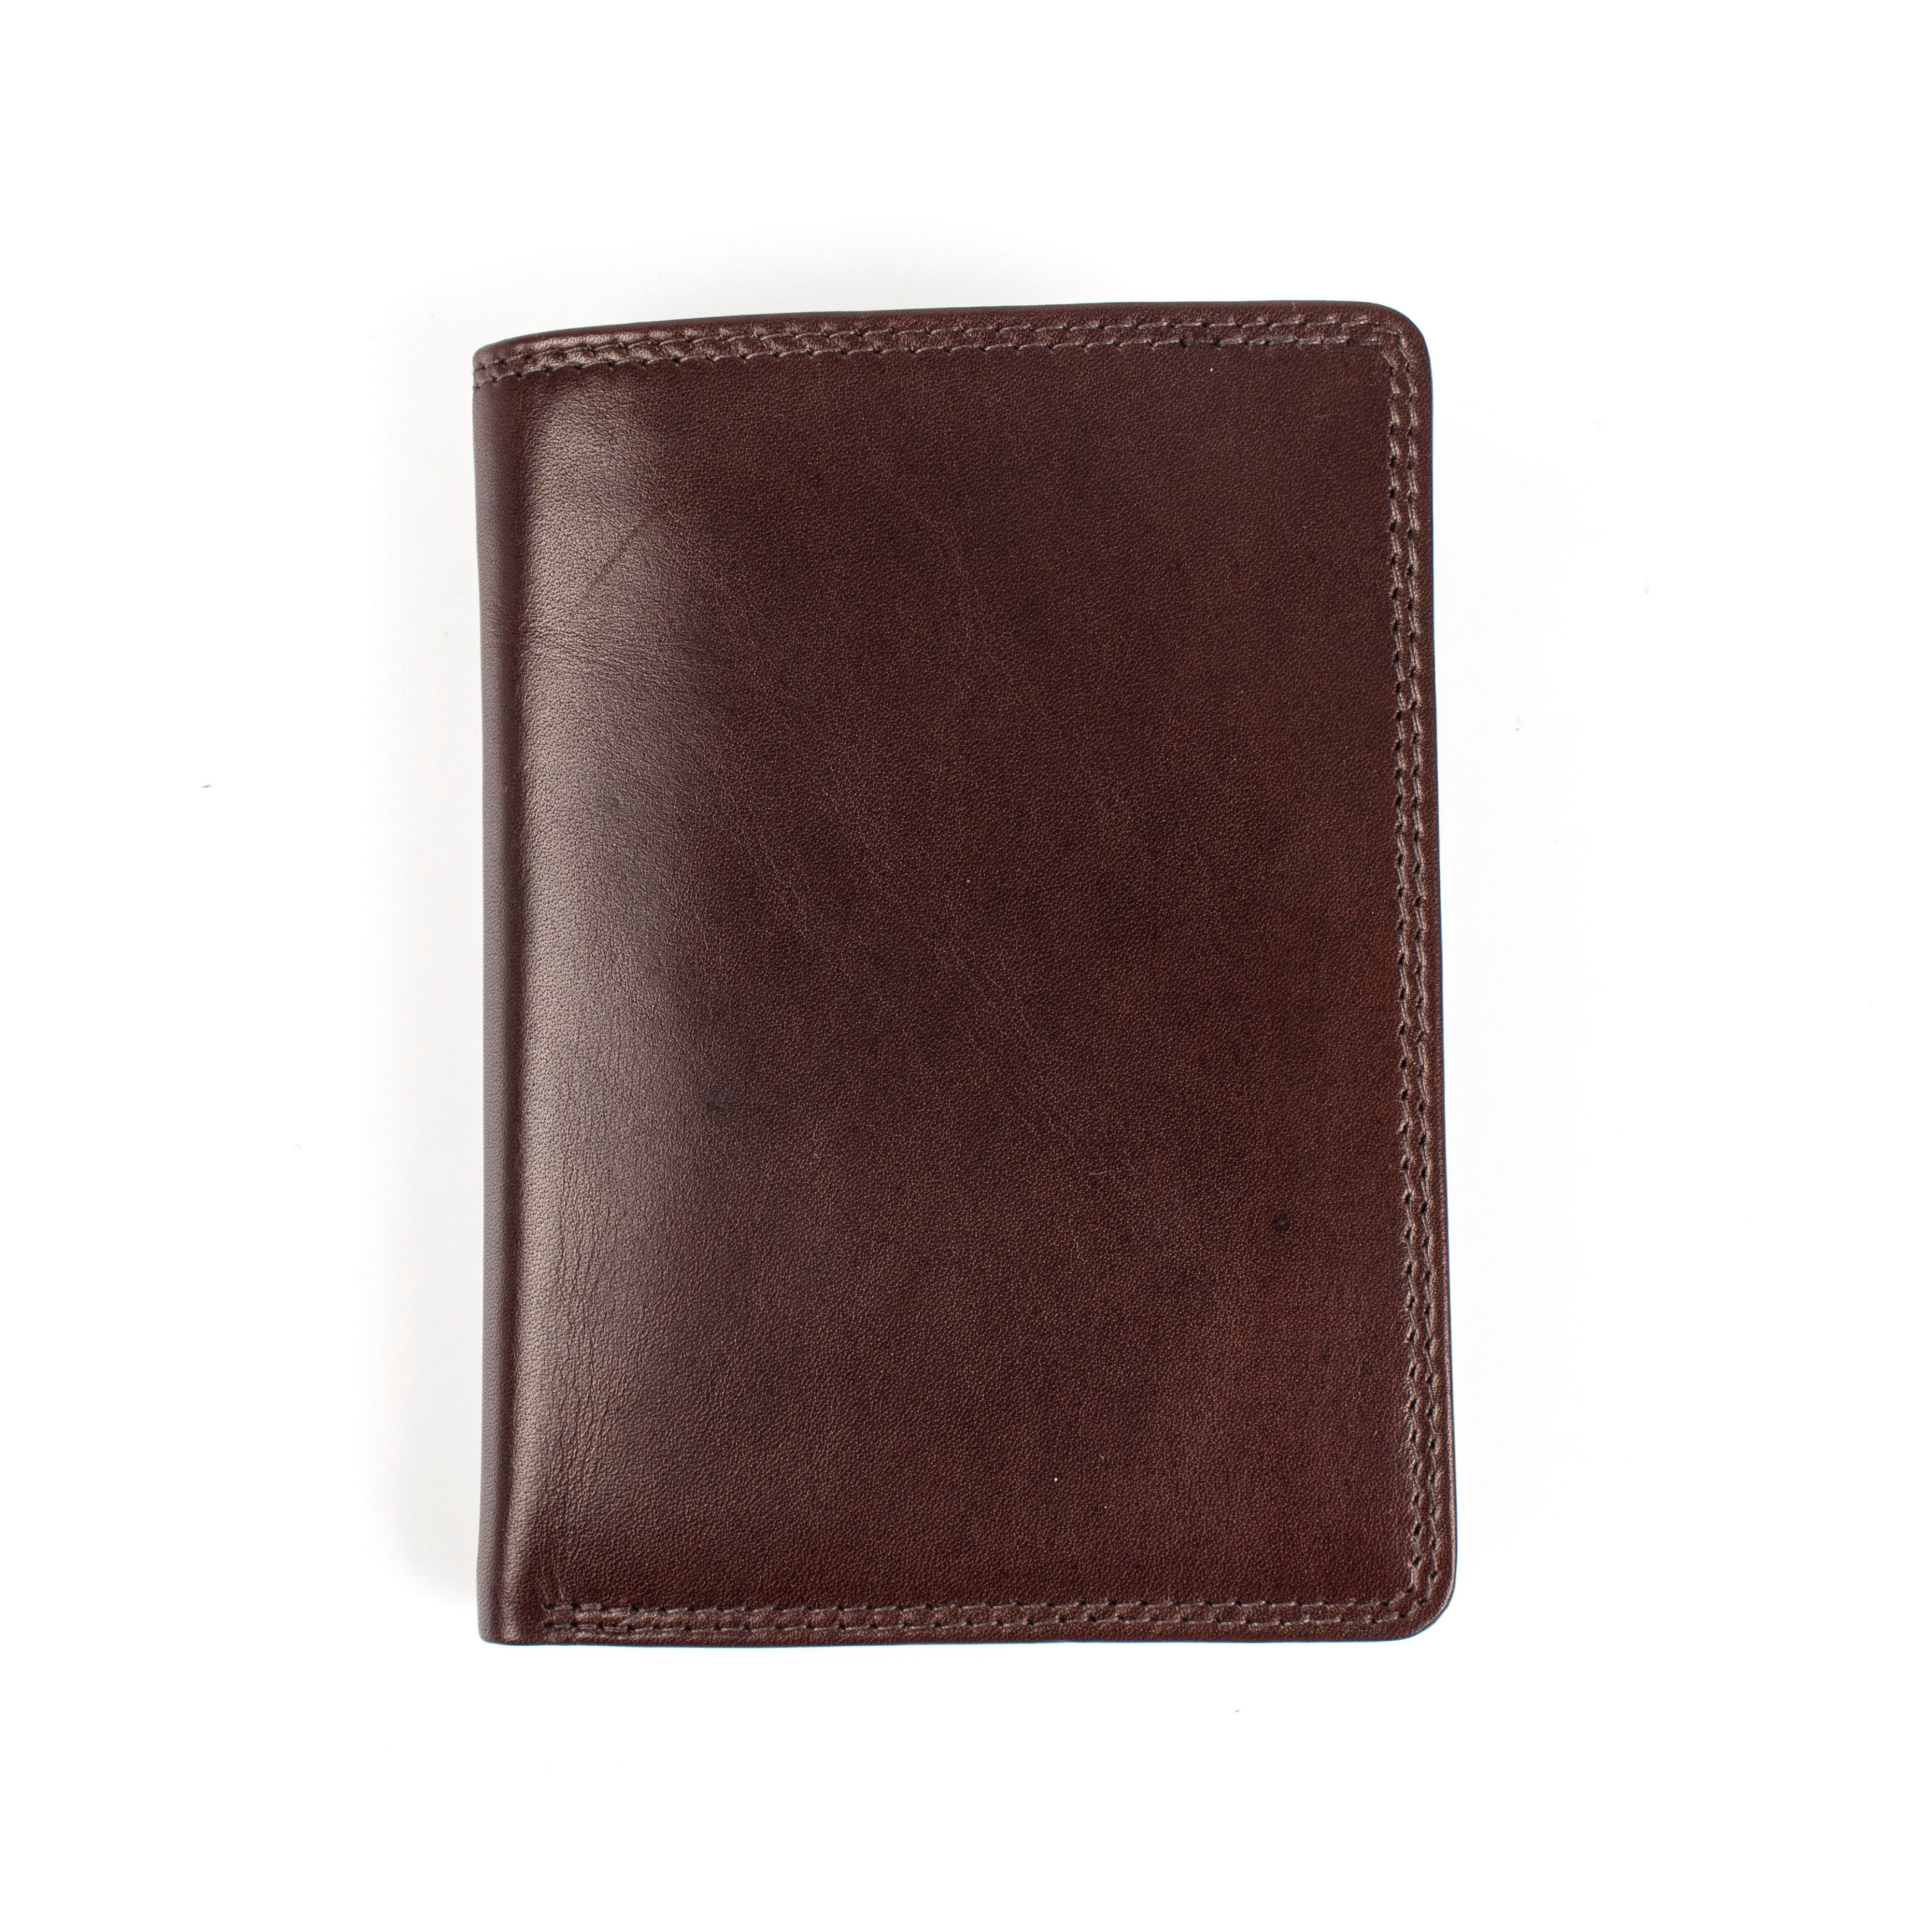 Dents Dents Mens leather wallet with contrast lined, Brown